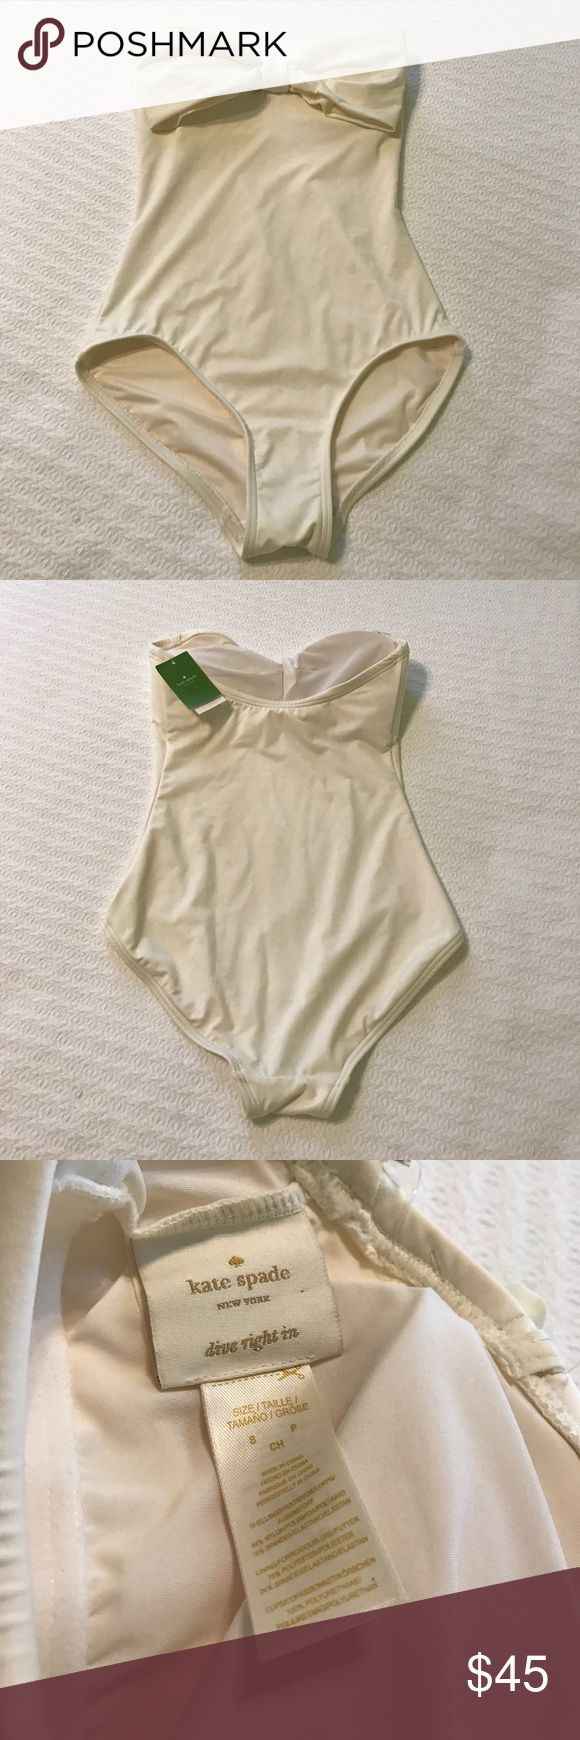 Kate Spade One Piece NWT Classic cream one piece swimsuit by Kate Spade. NWT. Size S. kate spade Swim One Pieces